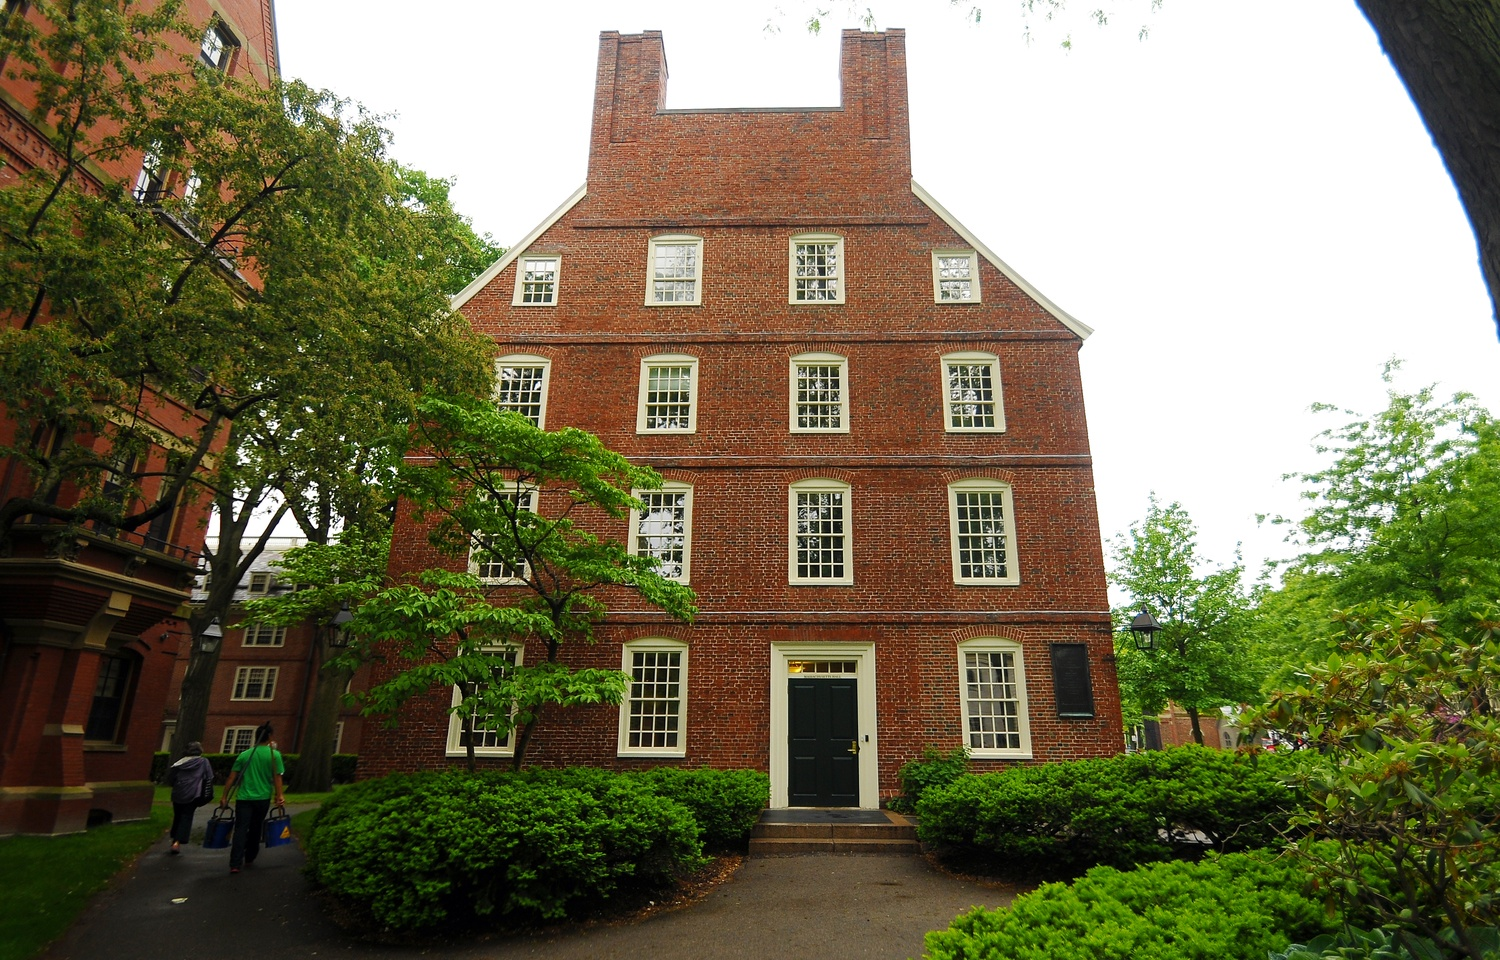 Massachusetts Hall, the home of Harvard's central administration.